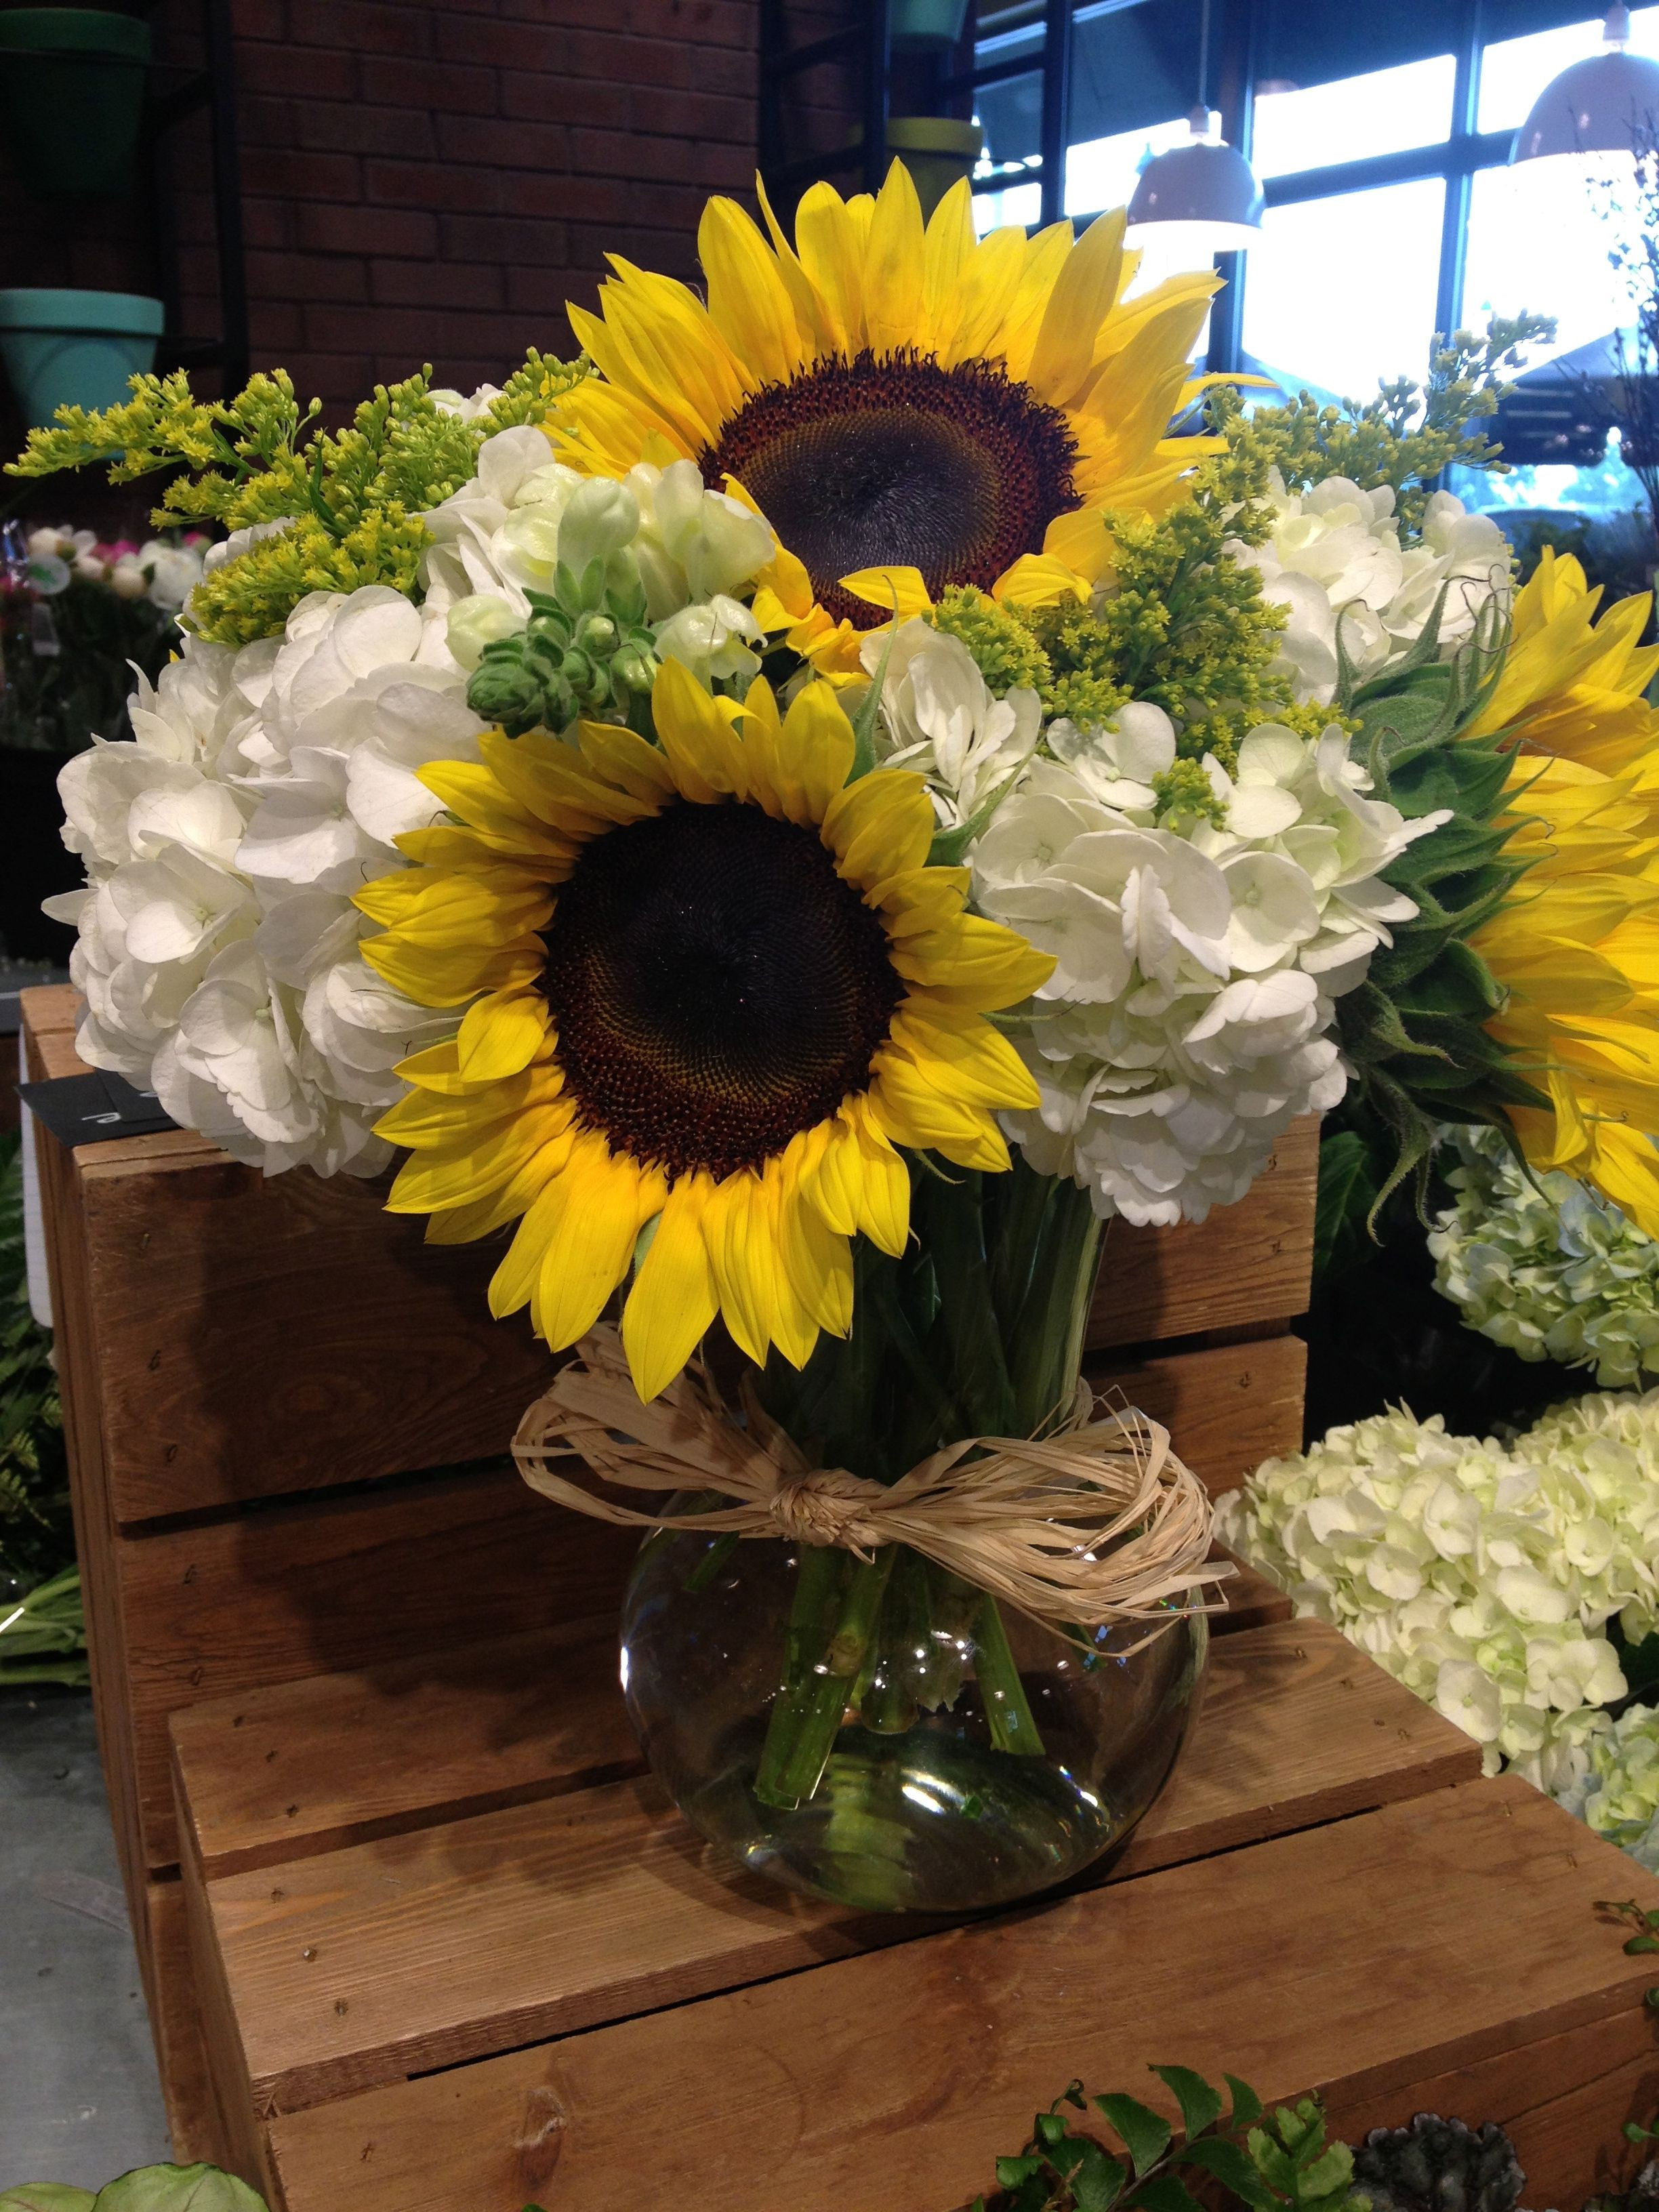 Flower Delivery for Canada Inspirational Sunflower and Hydrangea Flower Arrangement Beautiful